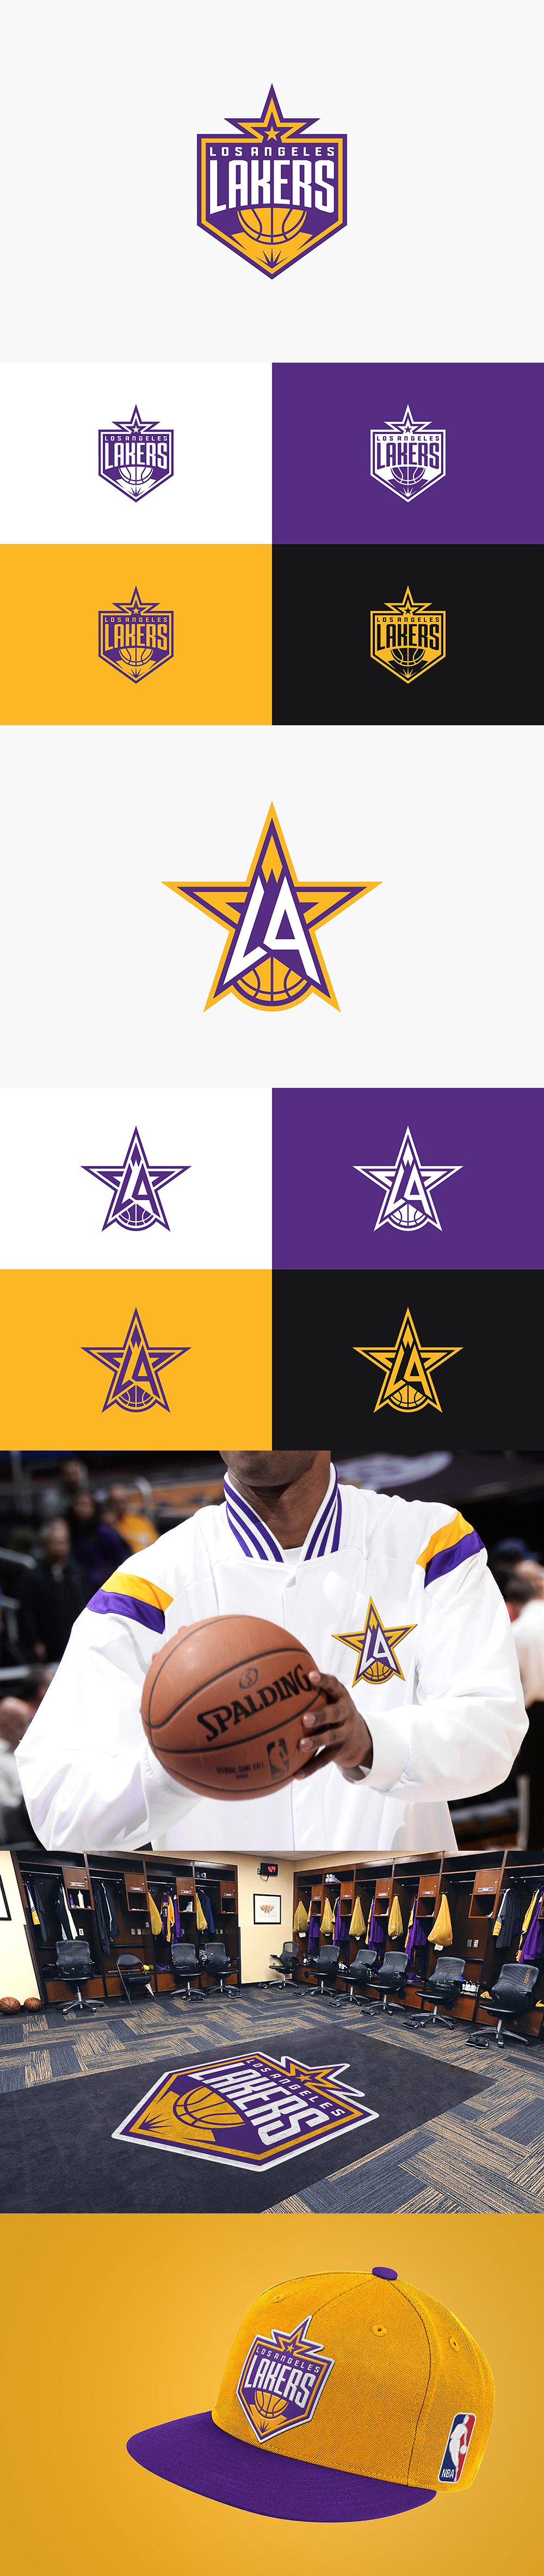 Basketball Team Logo: Los Angeles Lakers rebranding concept by Pan Hu